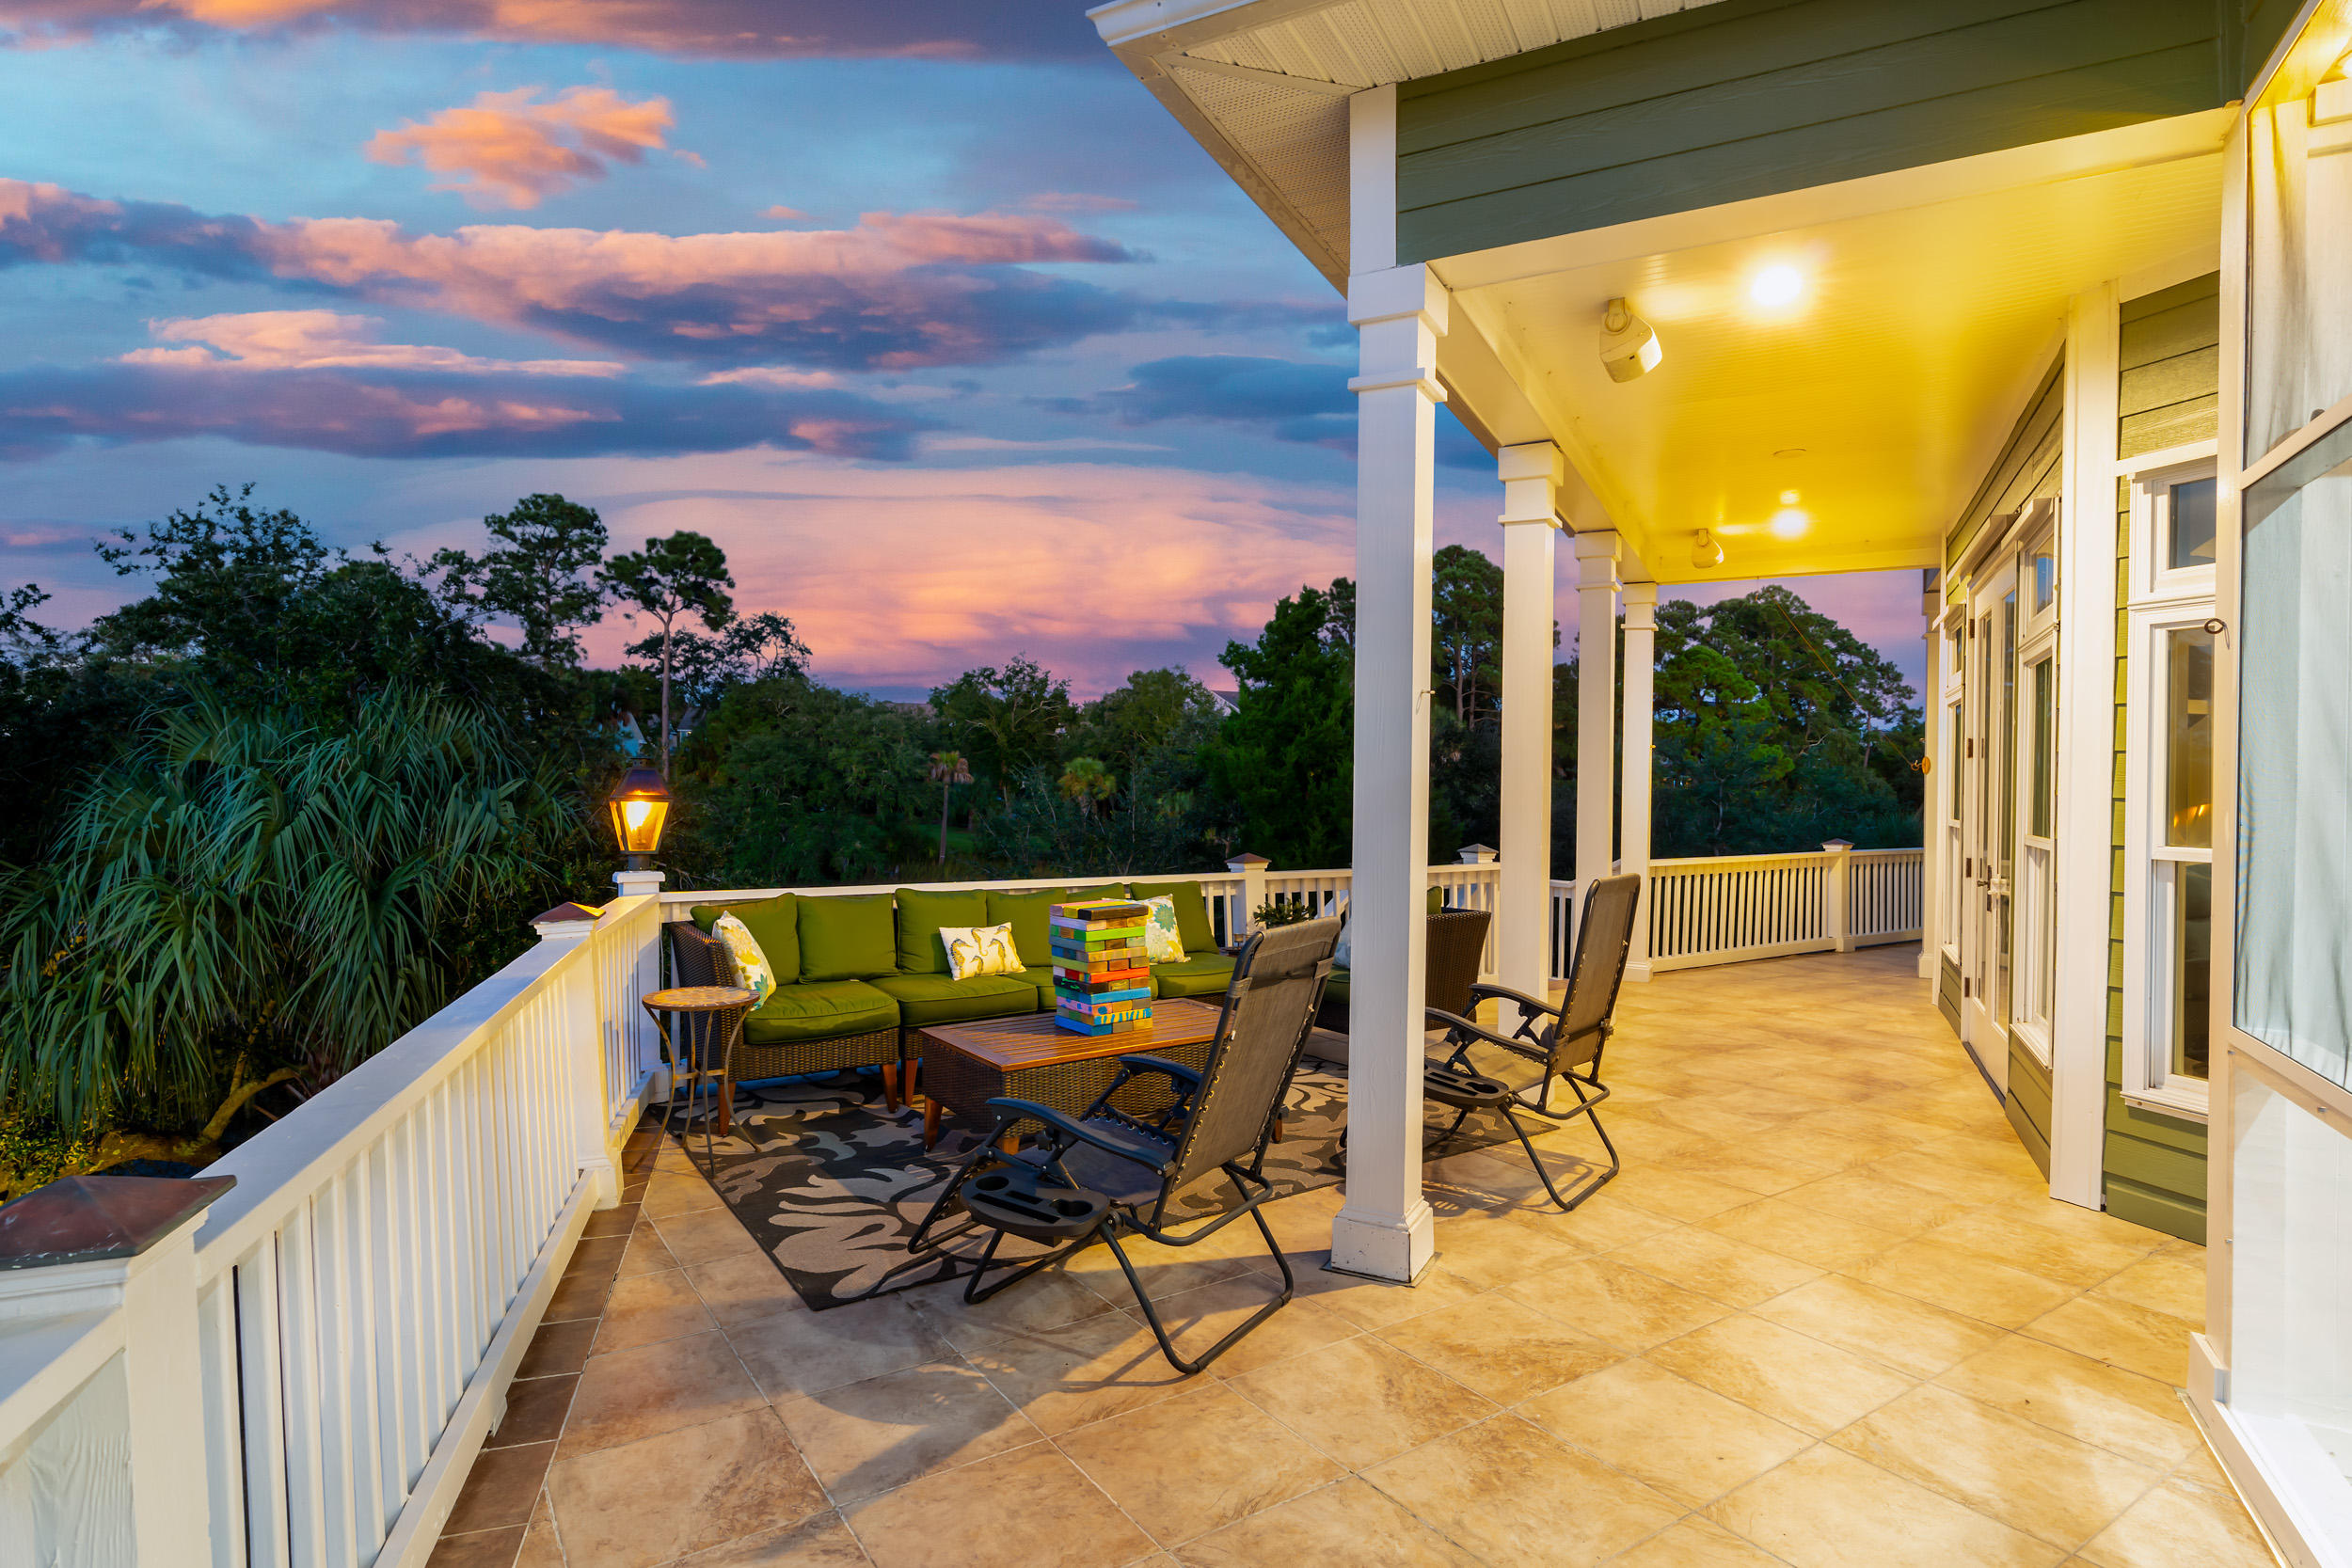 Rivertowne On The Wando Homes For Sale - 2268 Hartfords Bluff, Mount Pleasant, SC - 7